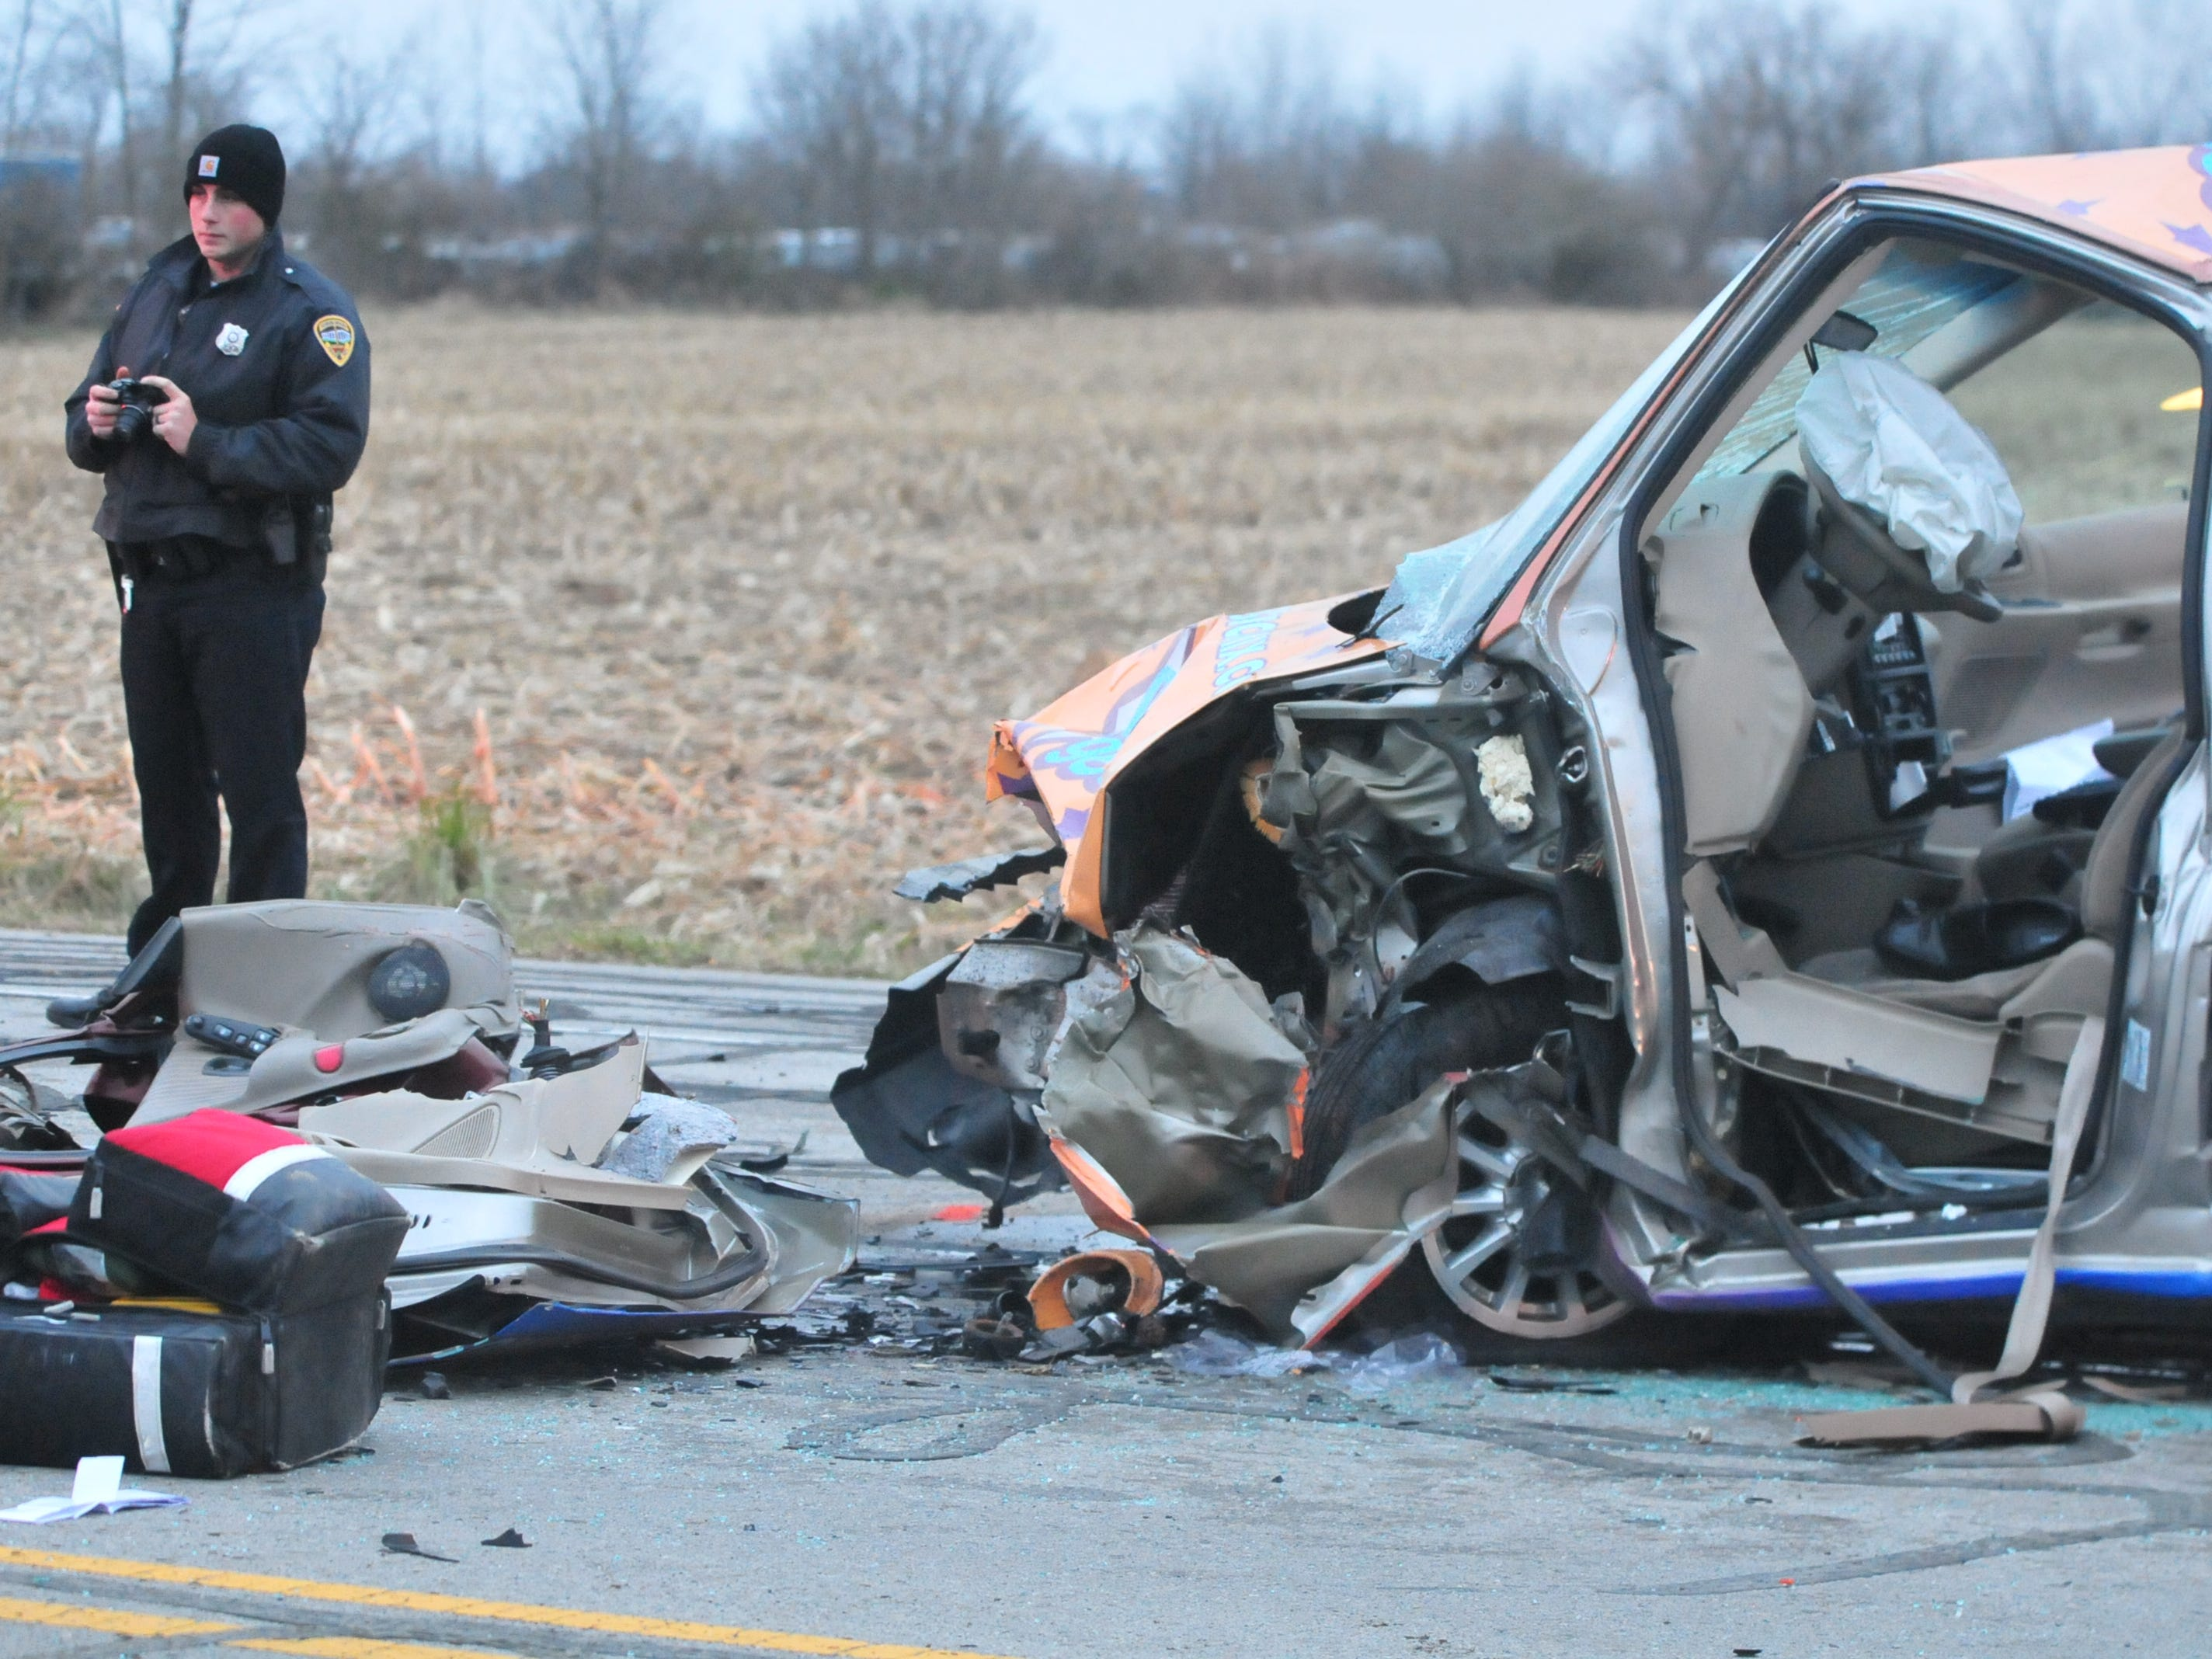 A Ford van sits damaged after a head-on collision with a Pontiac Grand Prix on Salisbury Road just north of Rich Road.